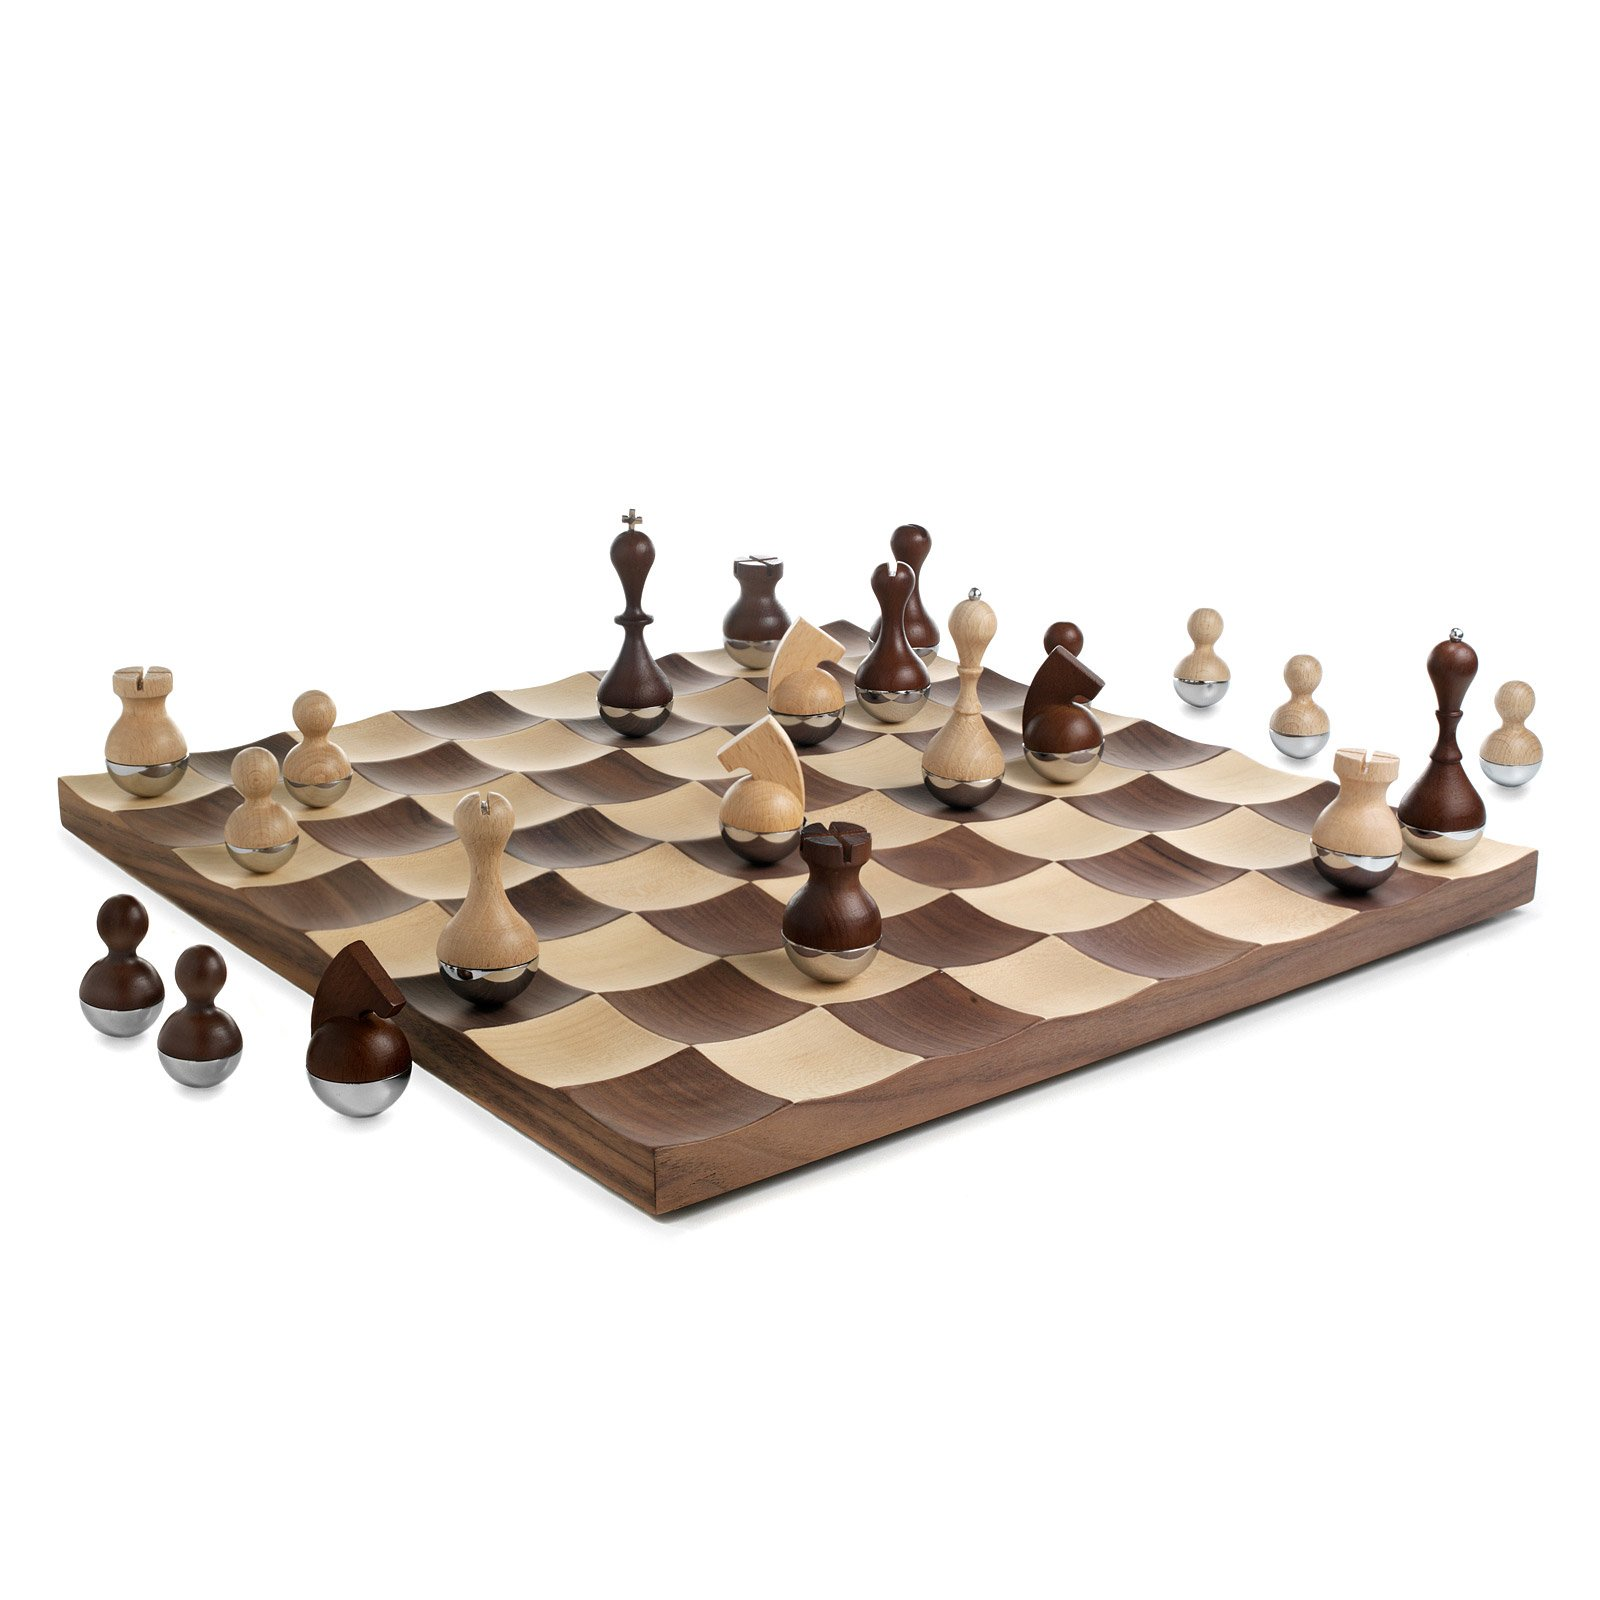 Modern Chess Table Wobble Chess Set  Modern Wood Chess Board  Uncommongoods